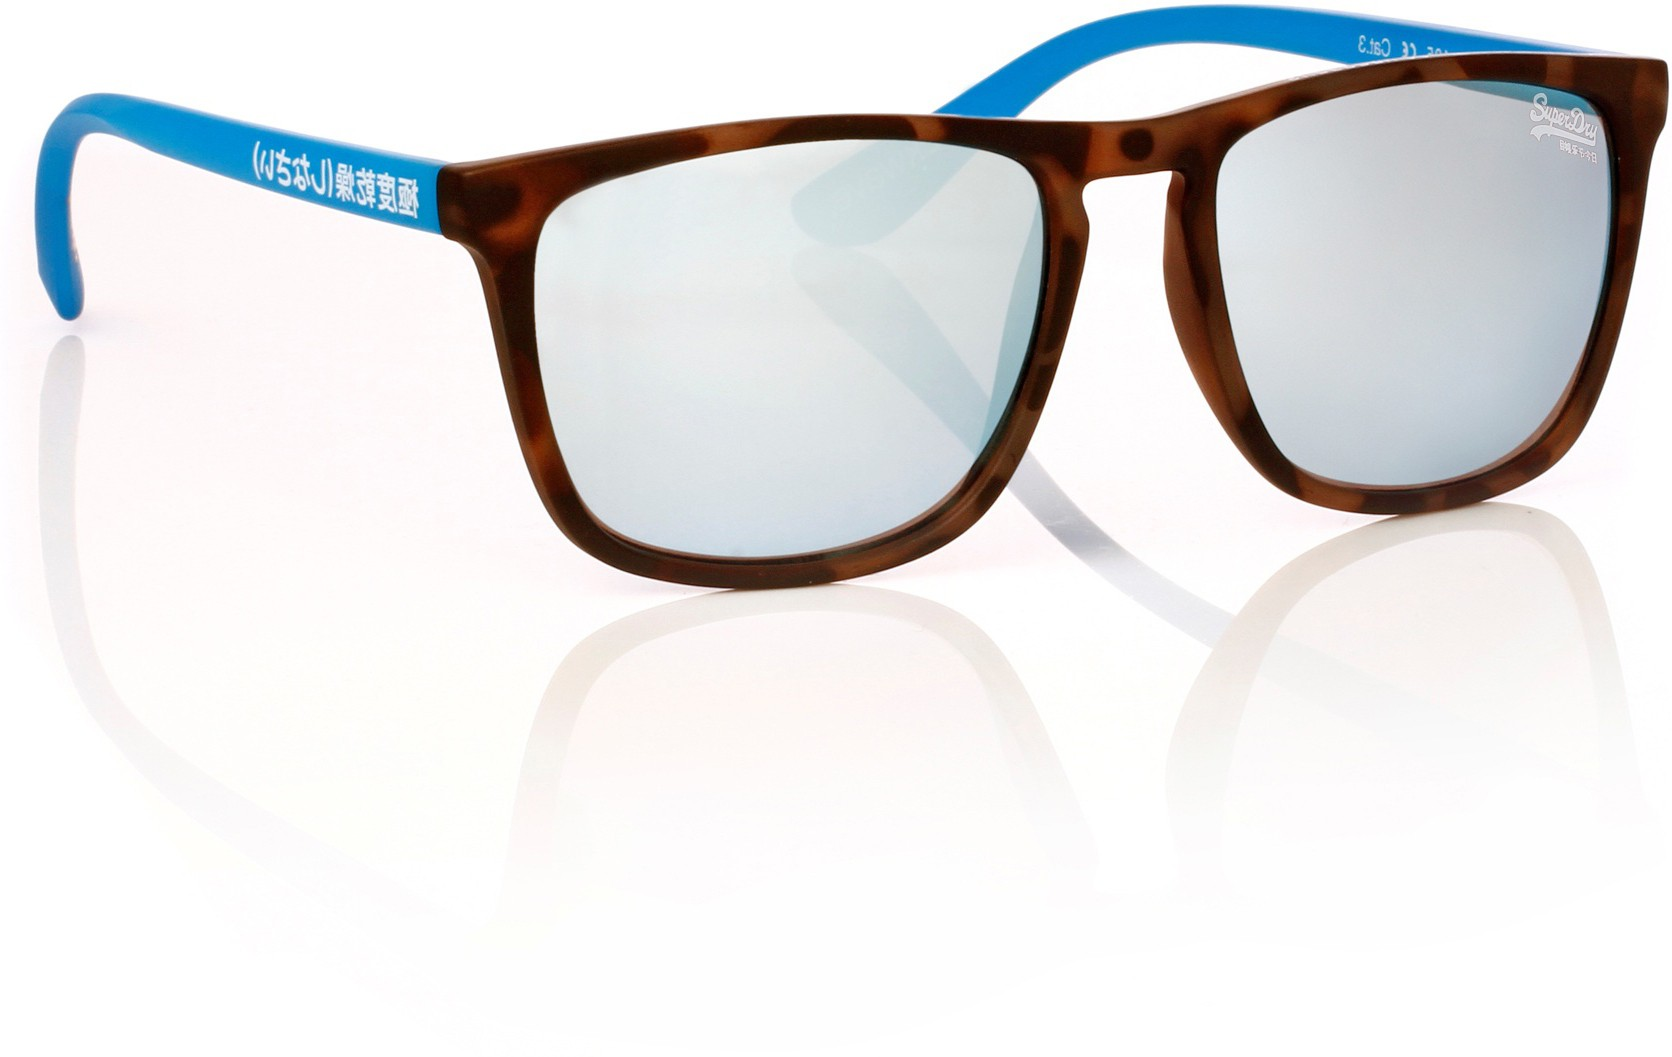 Deals - Delhi - Tommy Hilfiger... <br> Sunglasses<br> Category - sunglasses<br> Business - Flipkart.com